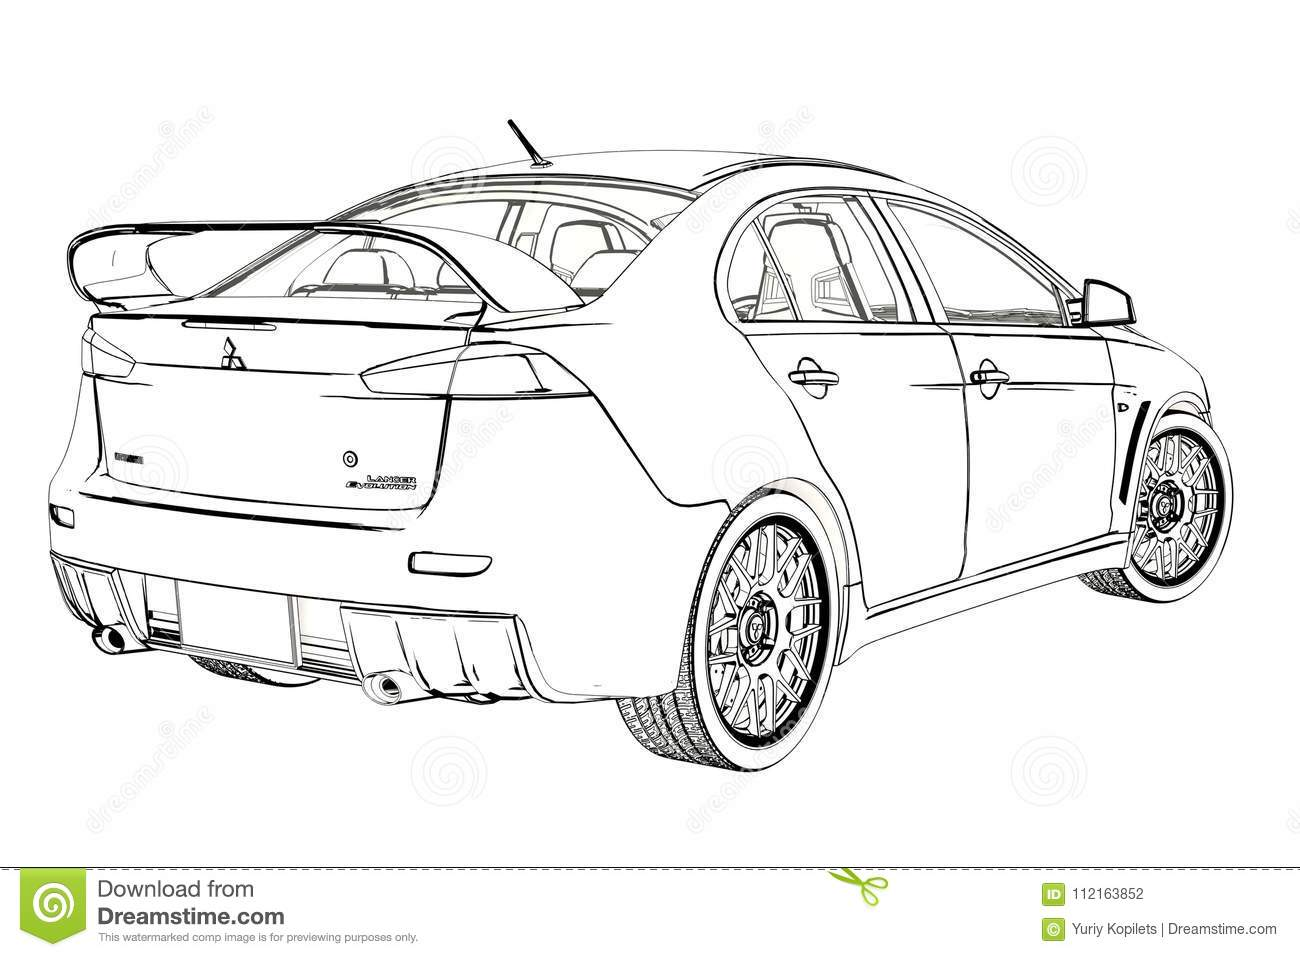 Sedan Mitsubishi Evolution X Sketch. 3D Illustration